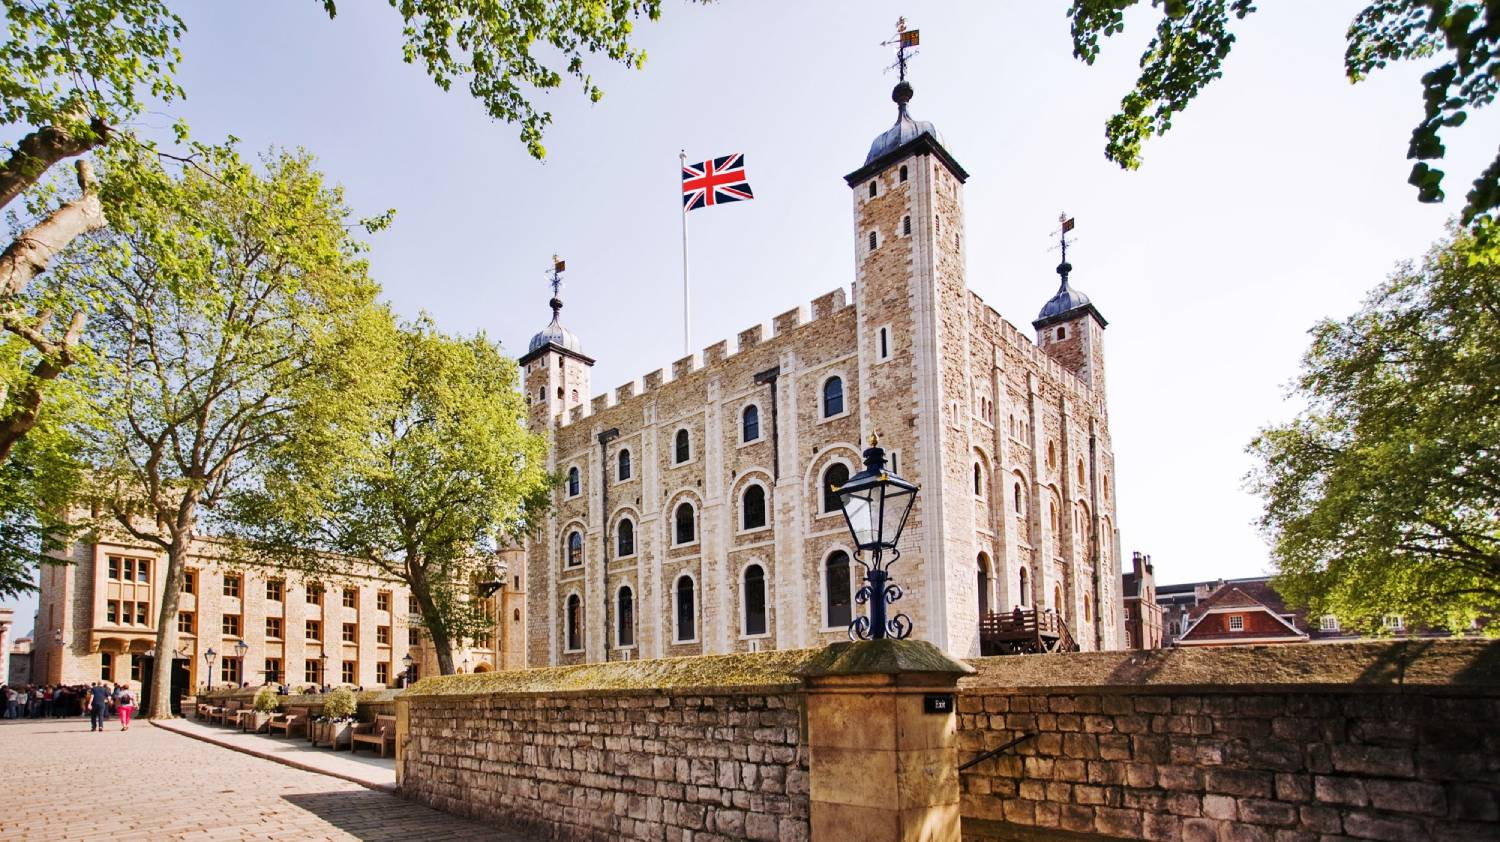 Tower of London - Things To Do In London